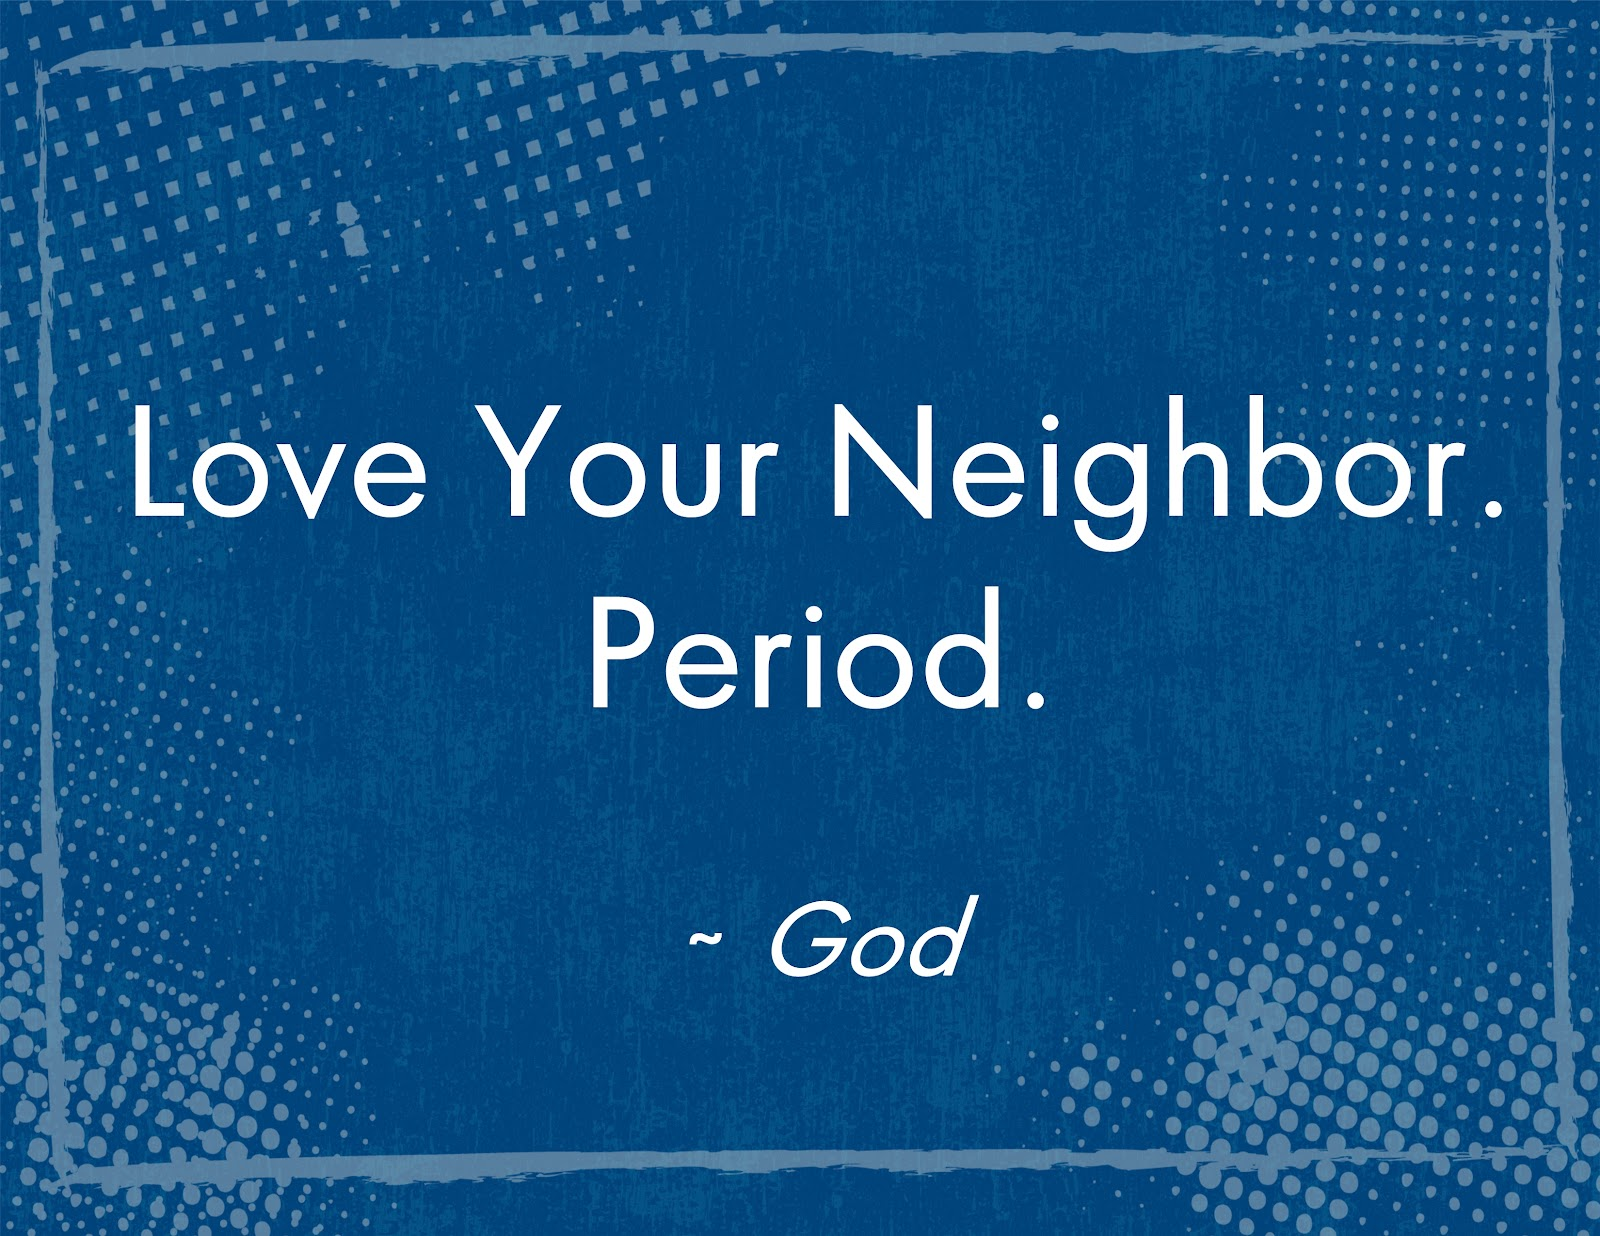 Justinas Random Acts of Kindness: Love your neighbor...